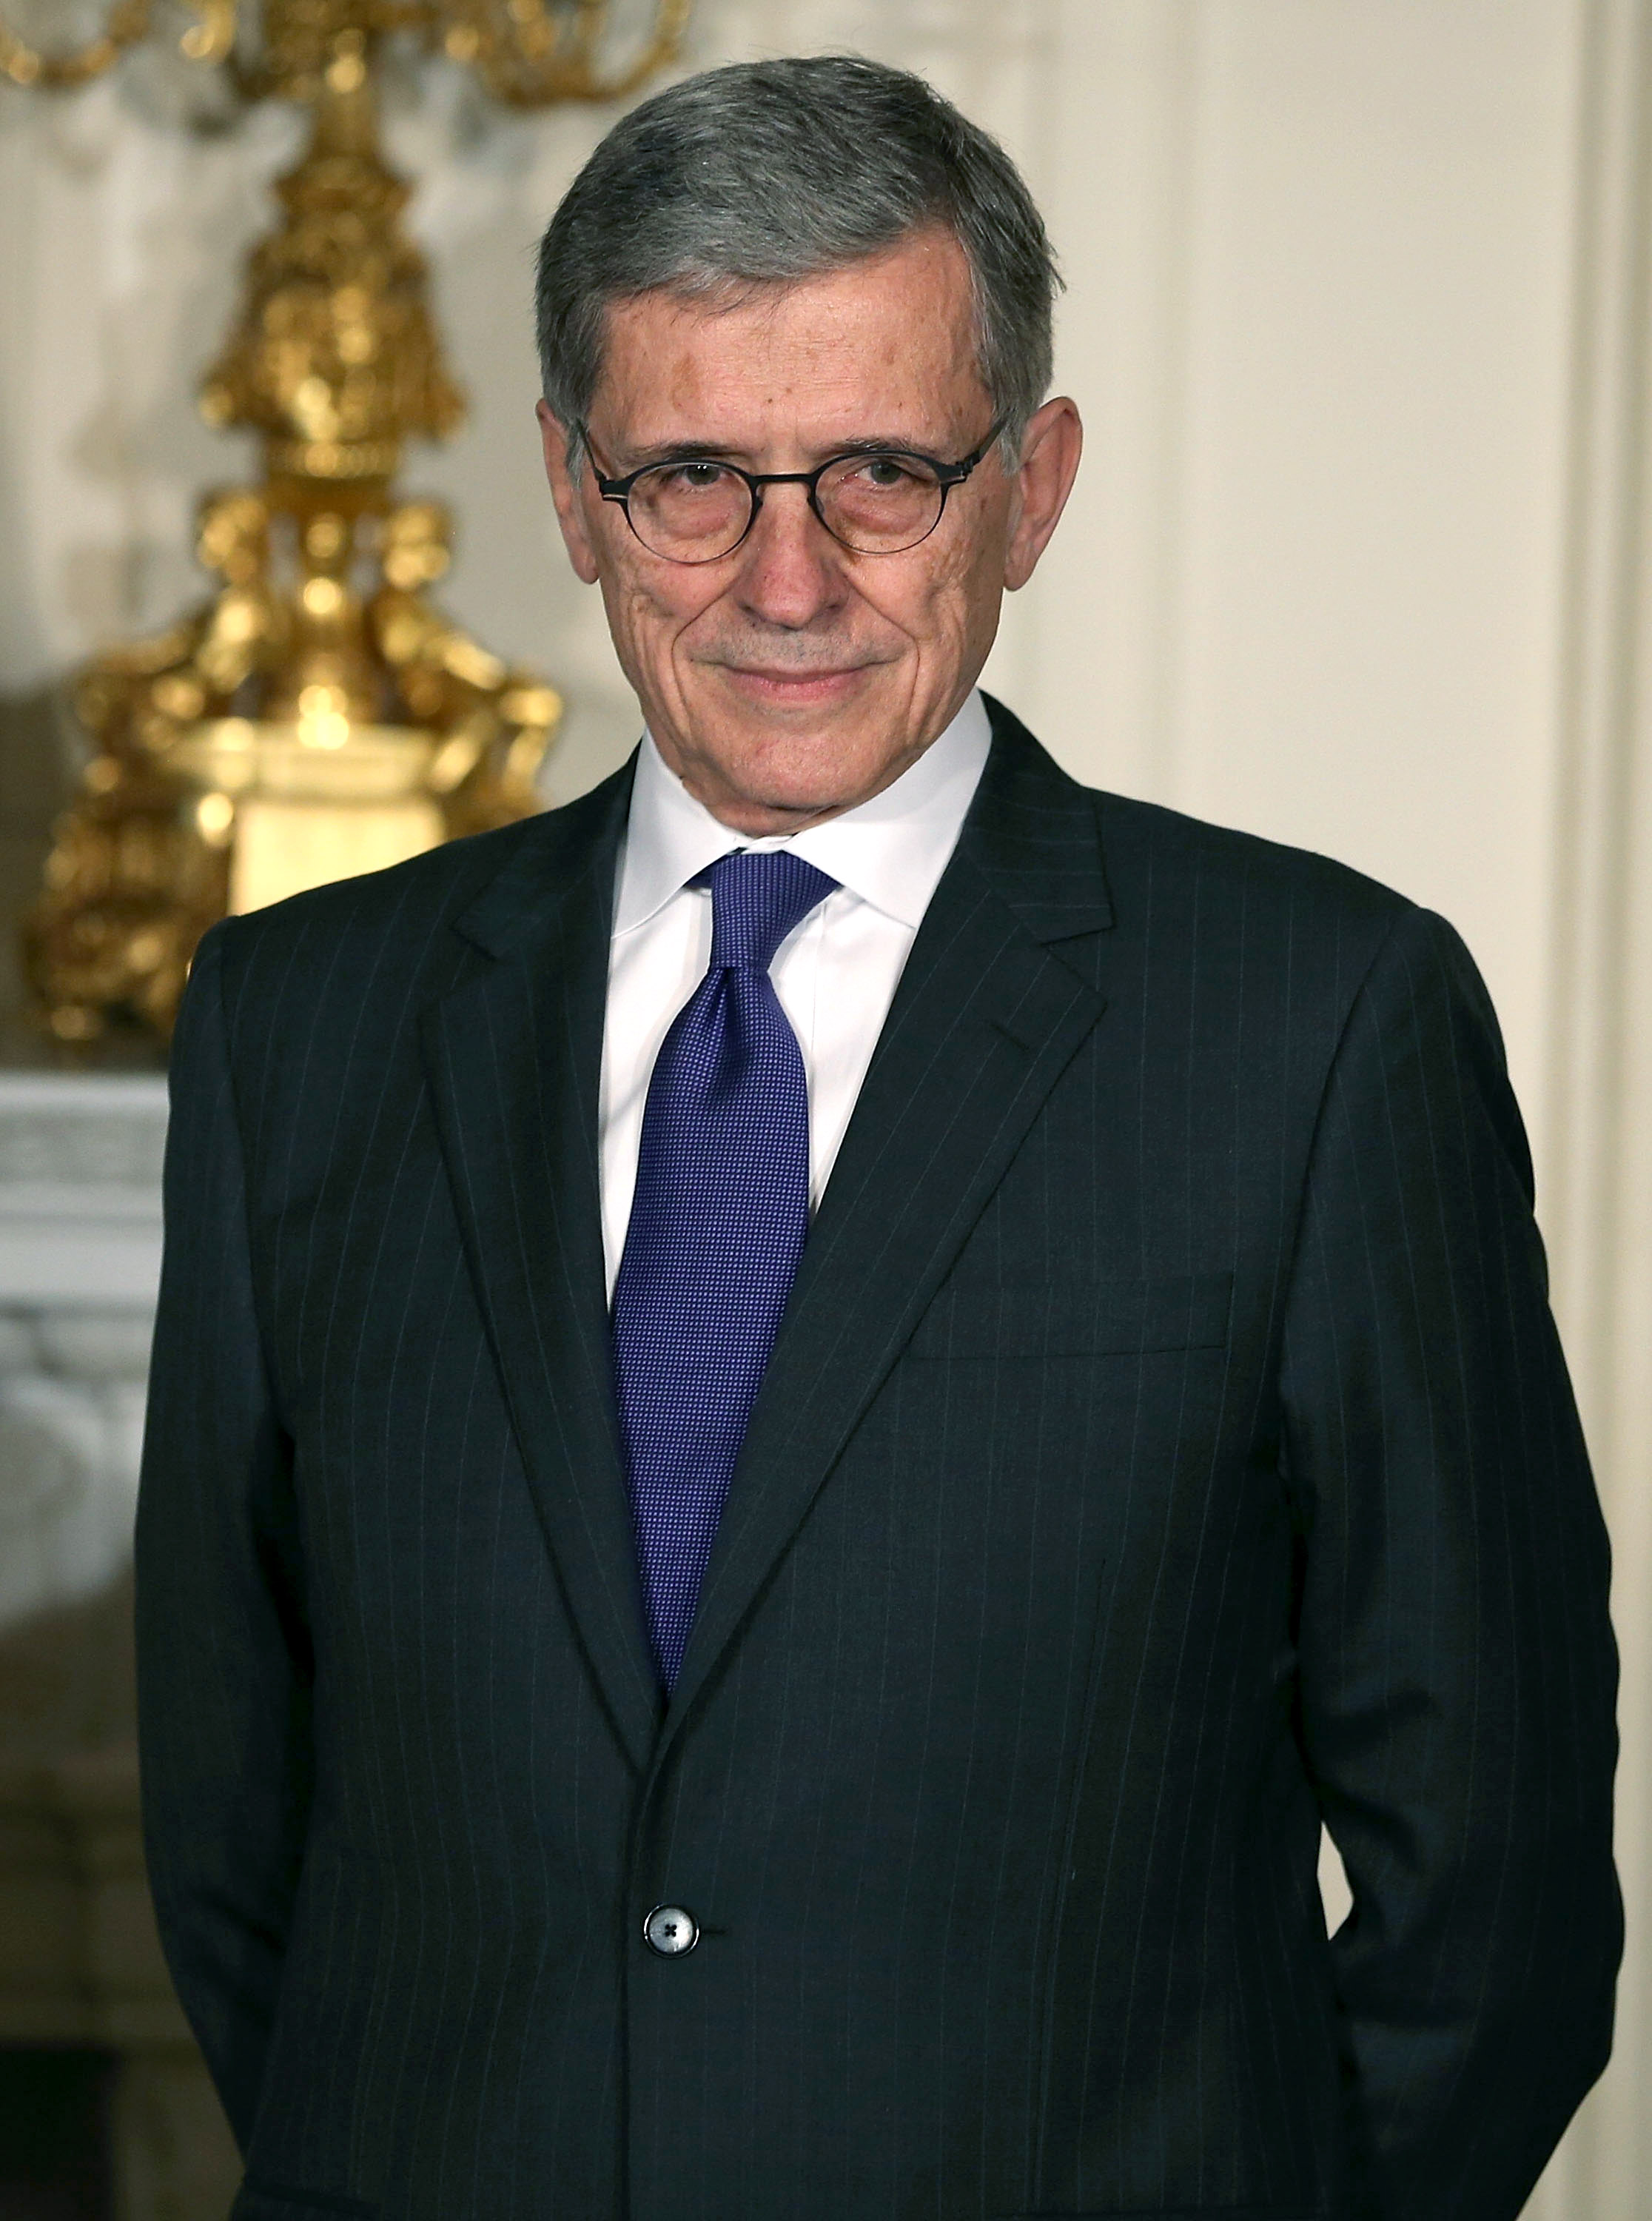 FCC Chairman Tom Wheeler. Photo by Mark Wilson/Getty Images